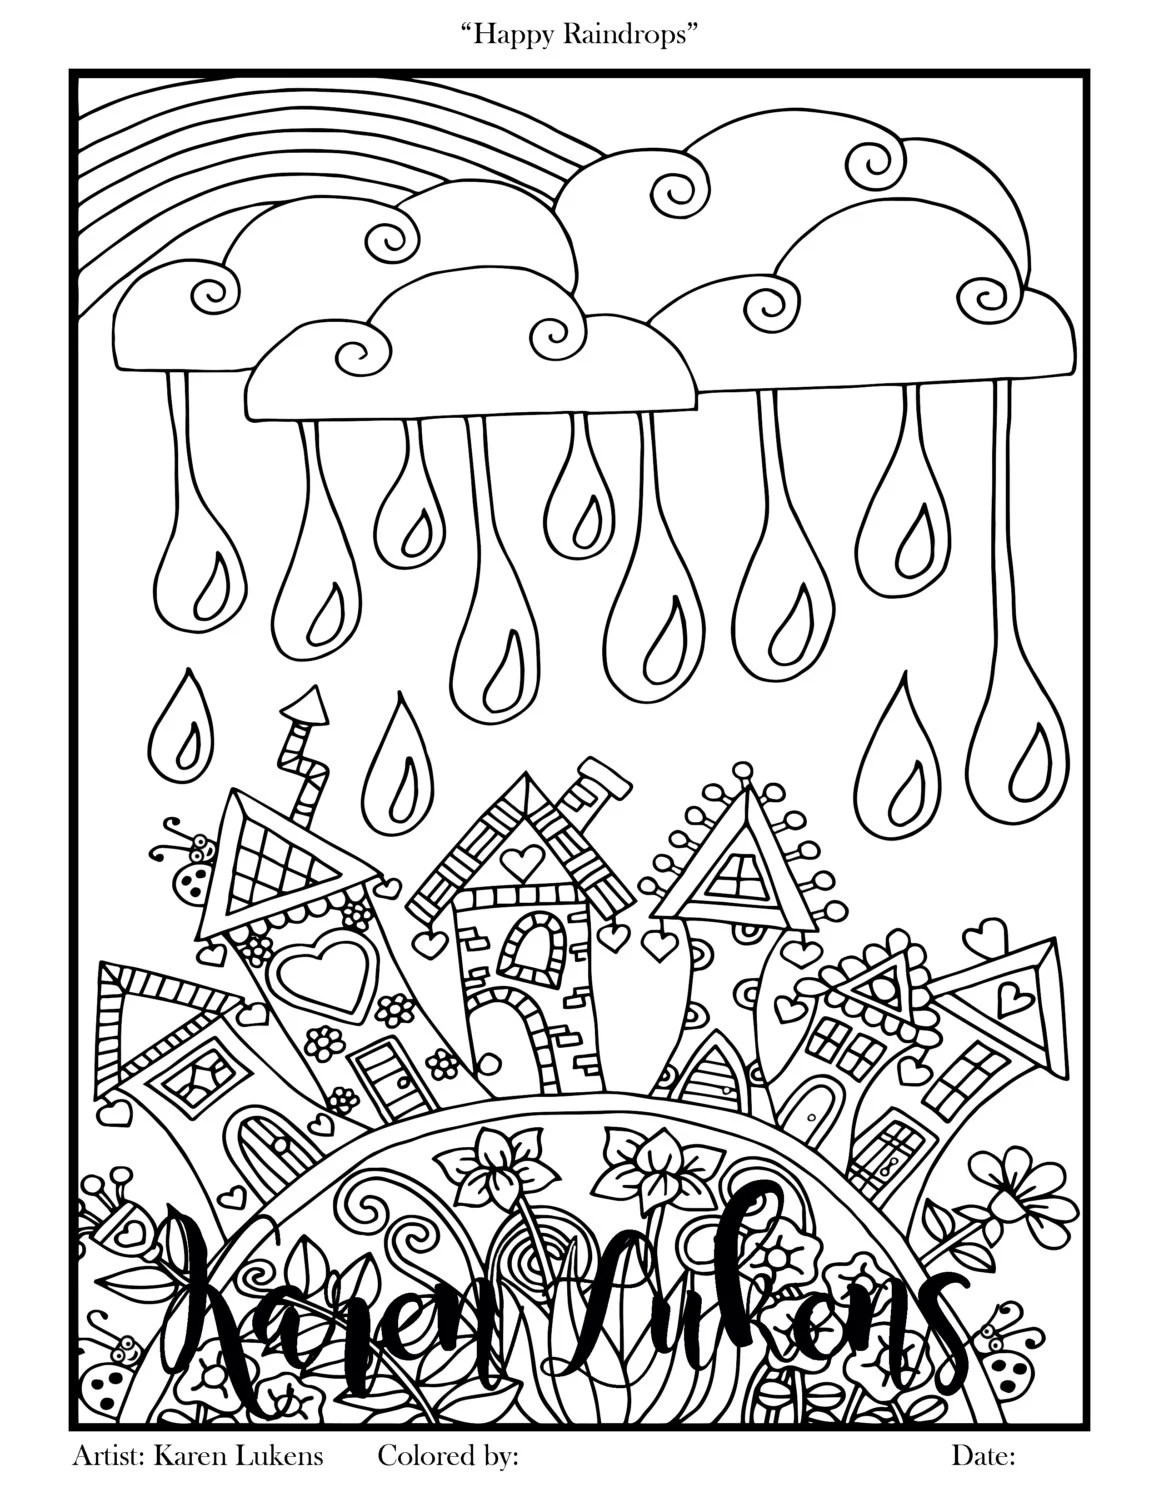 Happy Raindrops 1 Adult Coloring Book Page Printable